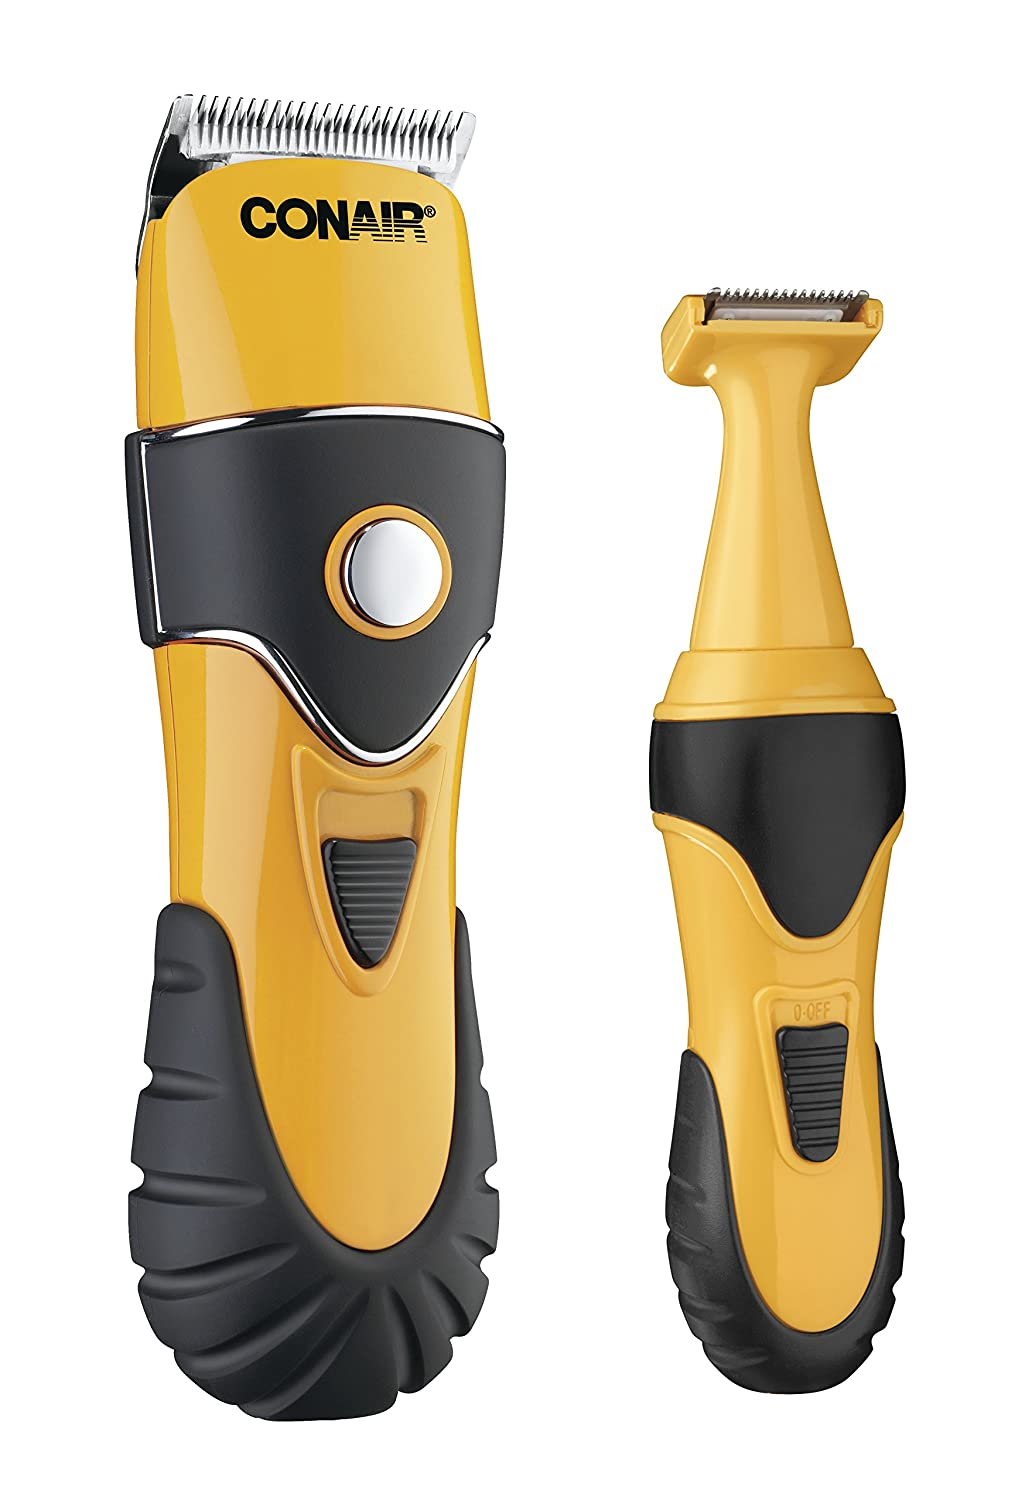 Conair 20 Piece Deluxe Cut and Groom Clipper/Trimmer HCT45